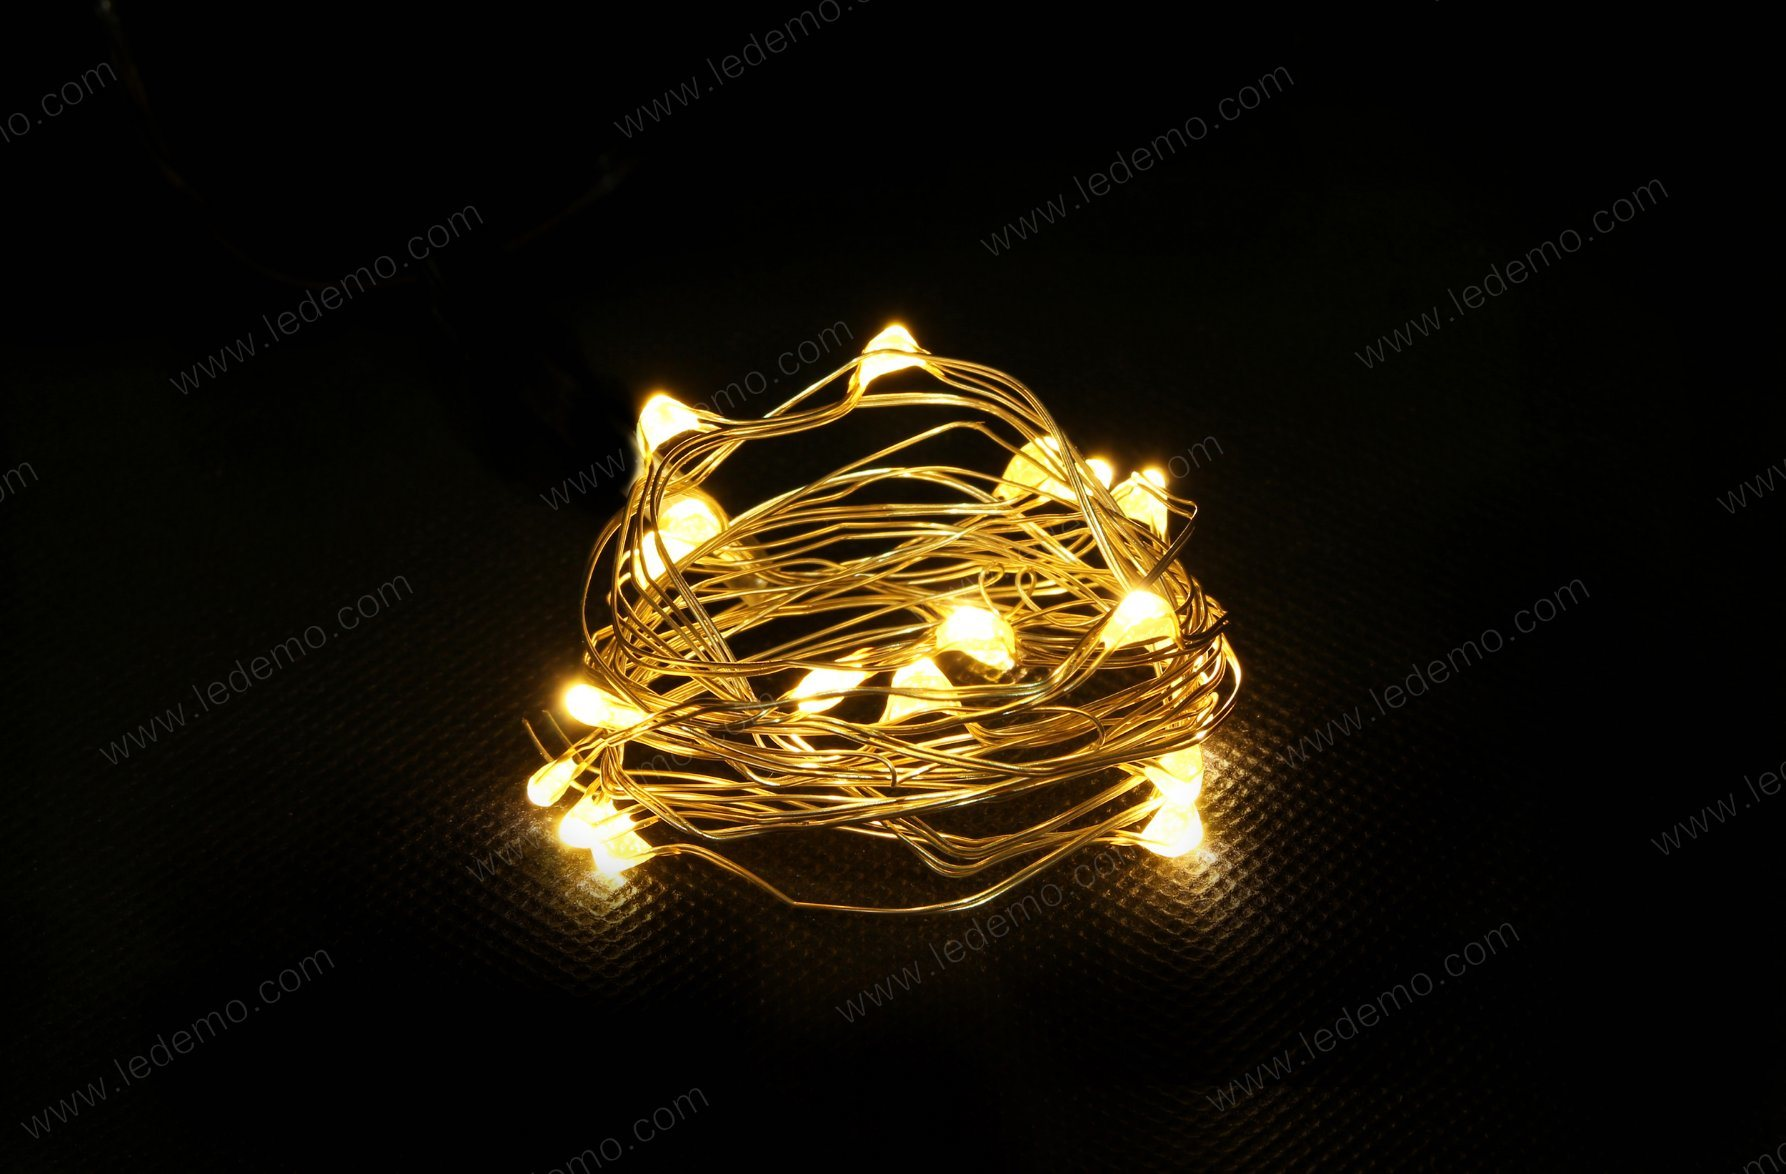 LED Christmas 2032 Battery Operated String Lights